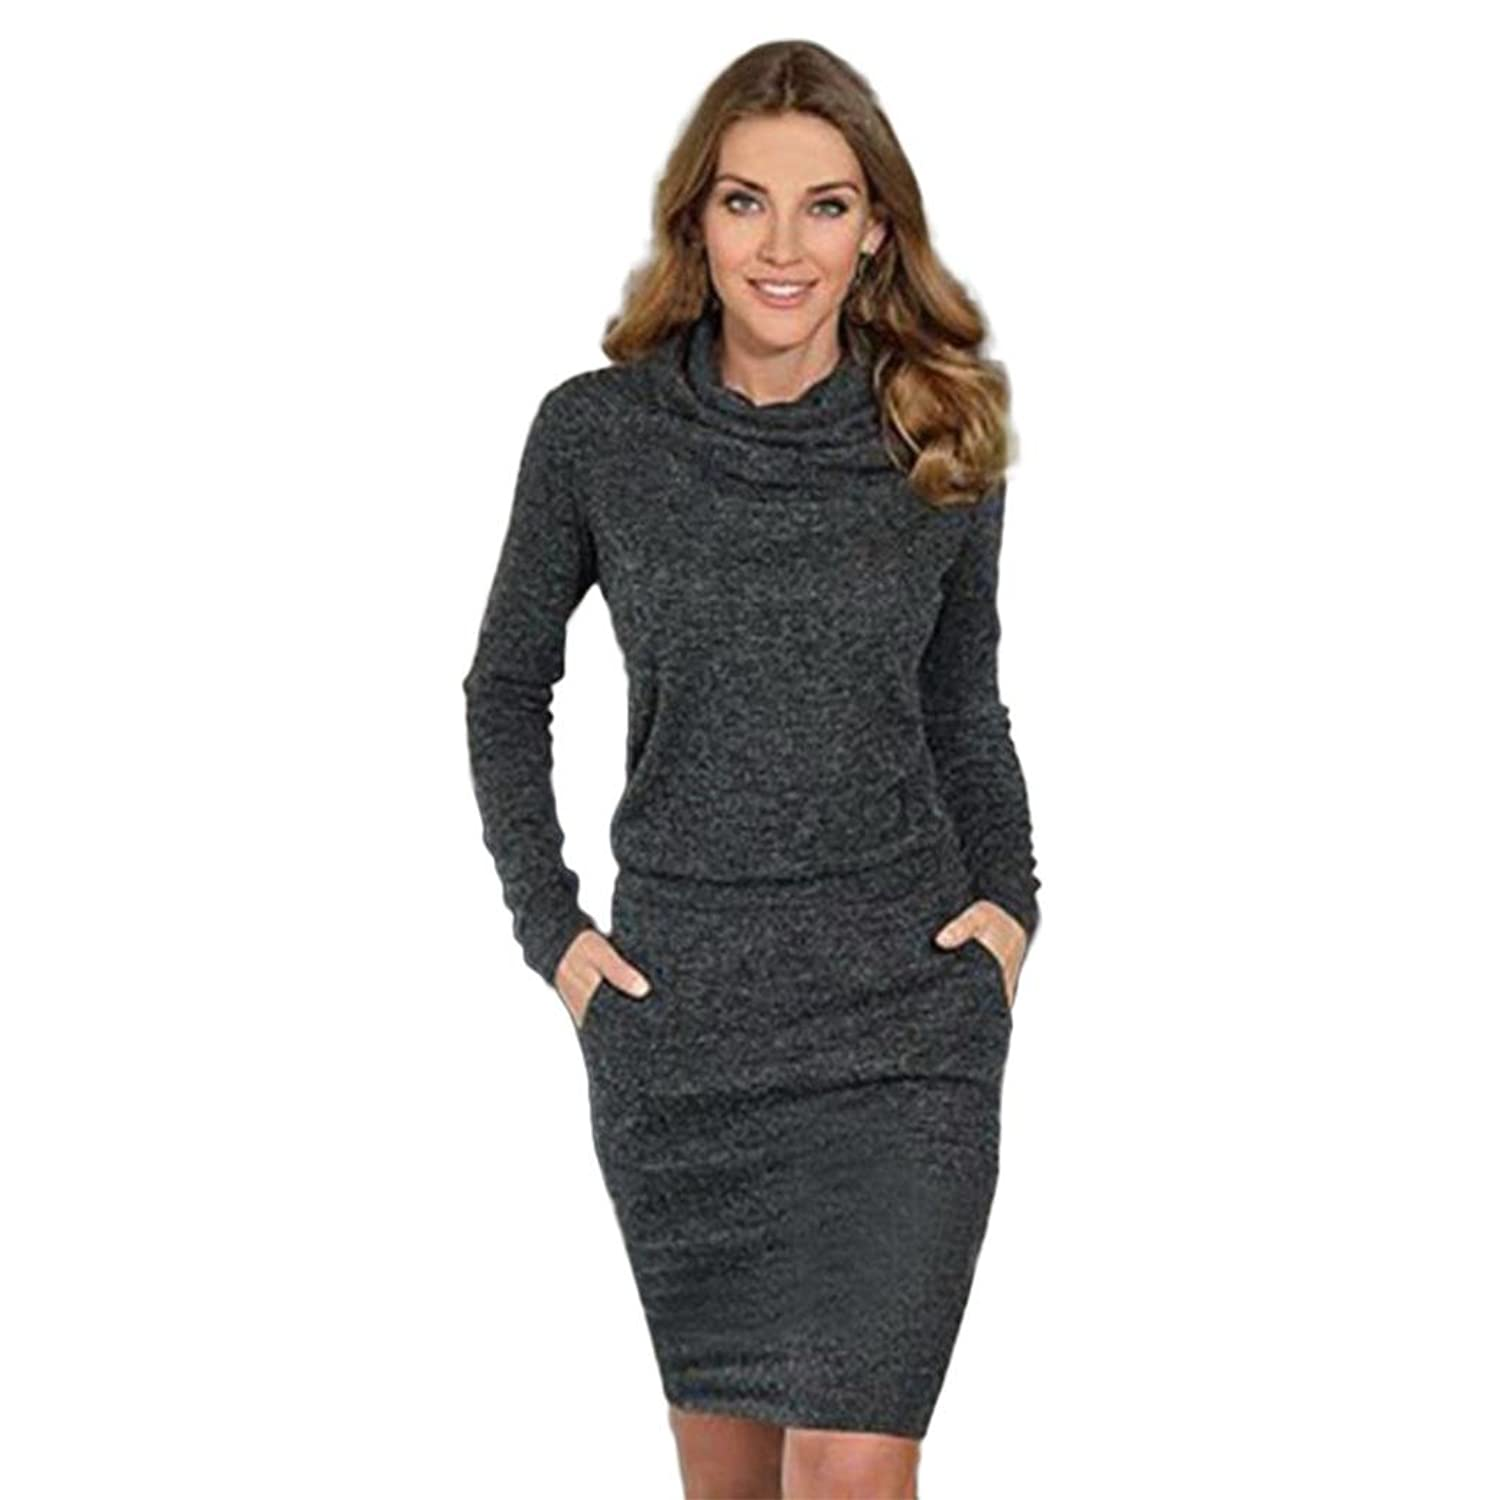 Usstore Women's Package Hip Slim Mini Pencil Business Cocktail Dress